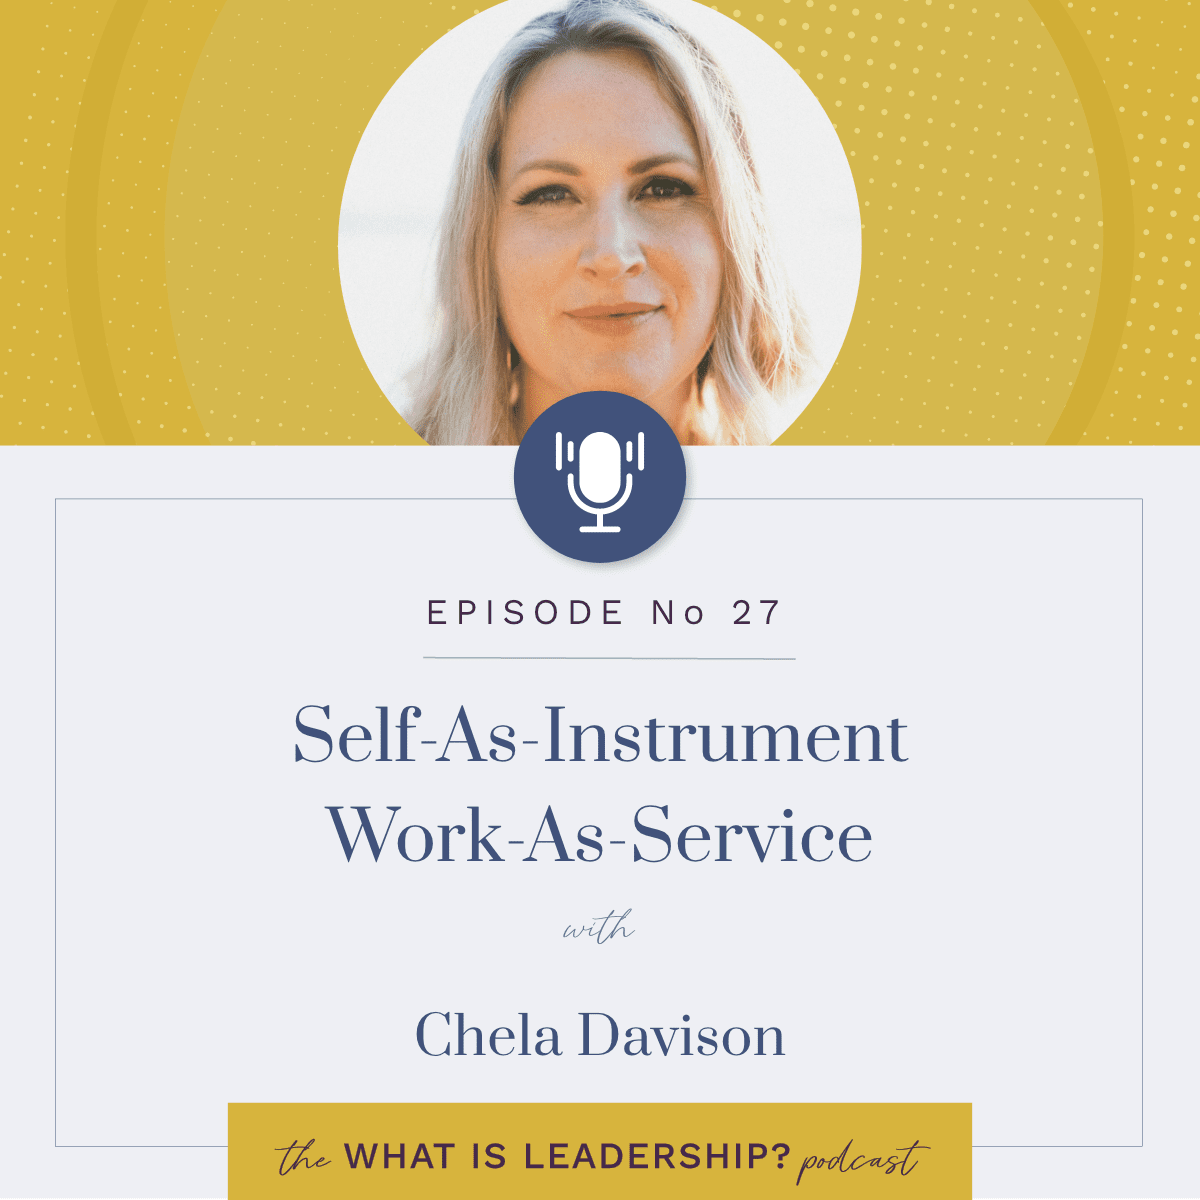 27 – Self-As-Instrument. Work-As-Service with Chela Davison